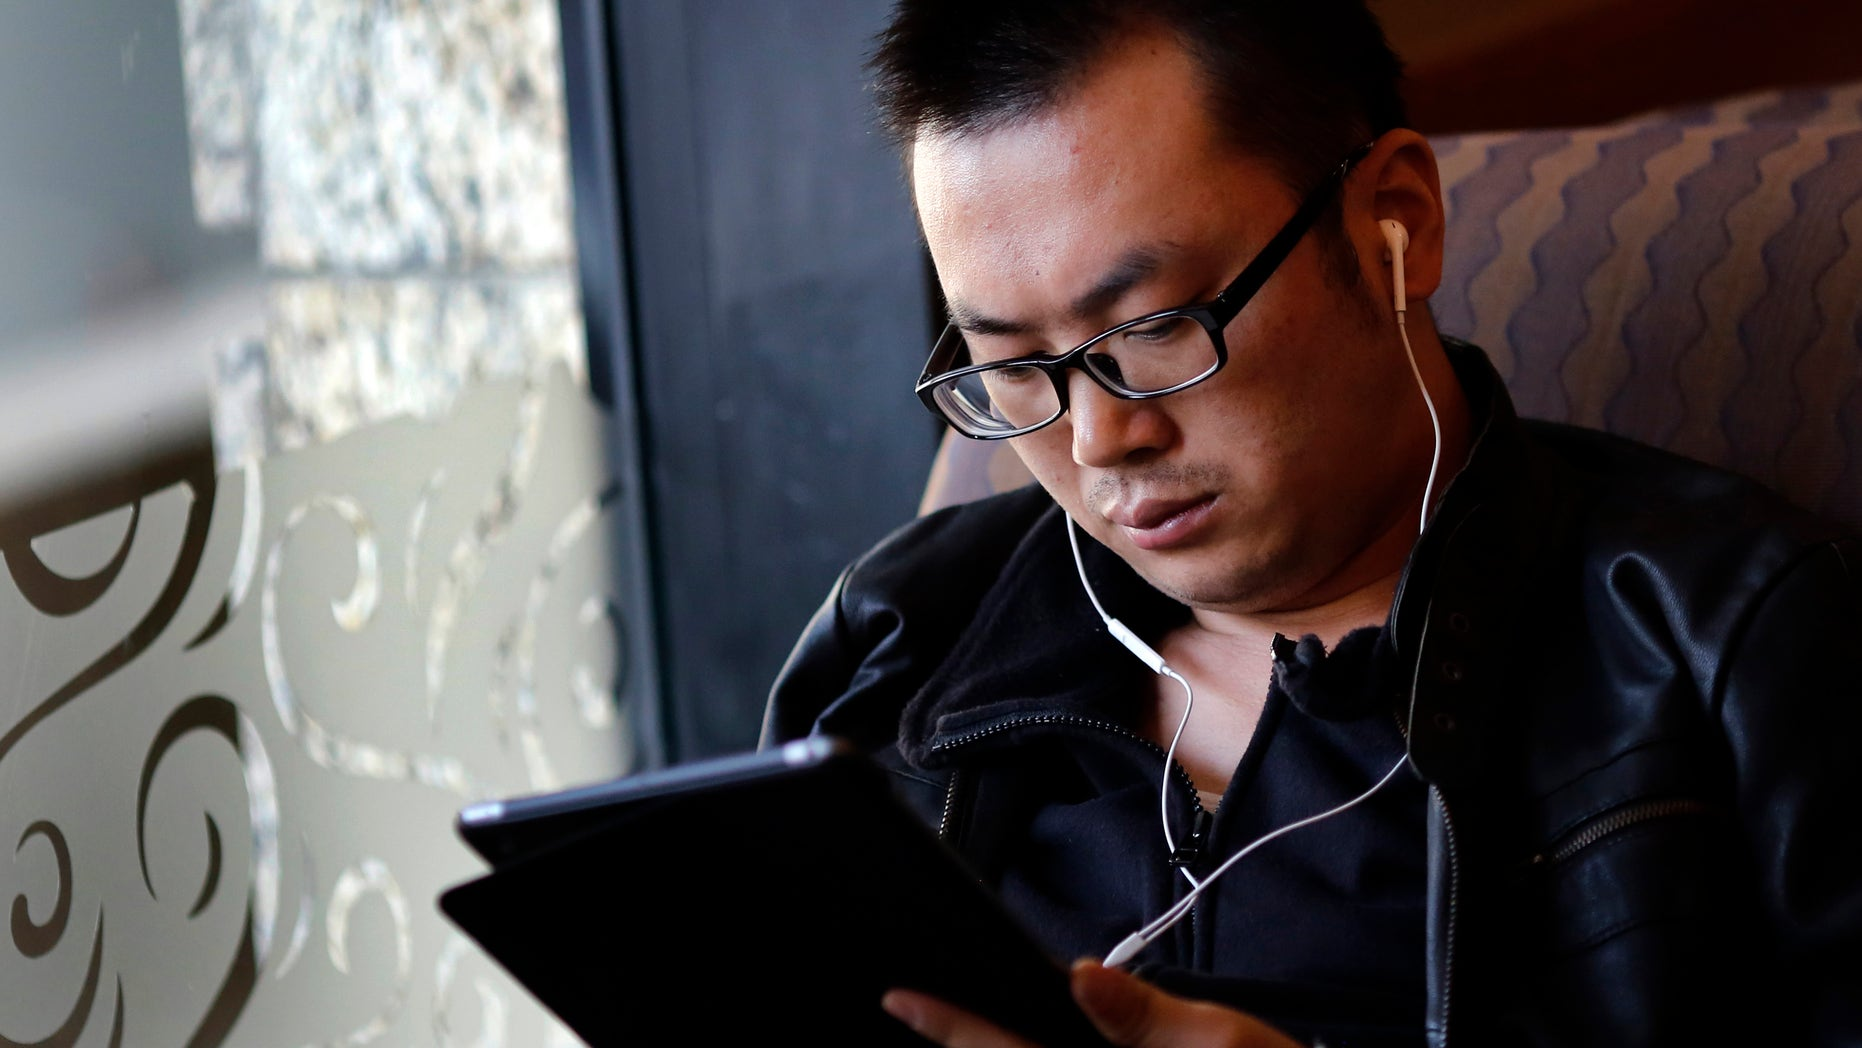 File photo. A man use his iPad inside a local coffee shop in downtown Shanghai November 28, 2013. (REUTERS/Carlos Barria)